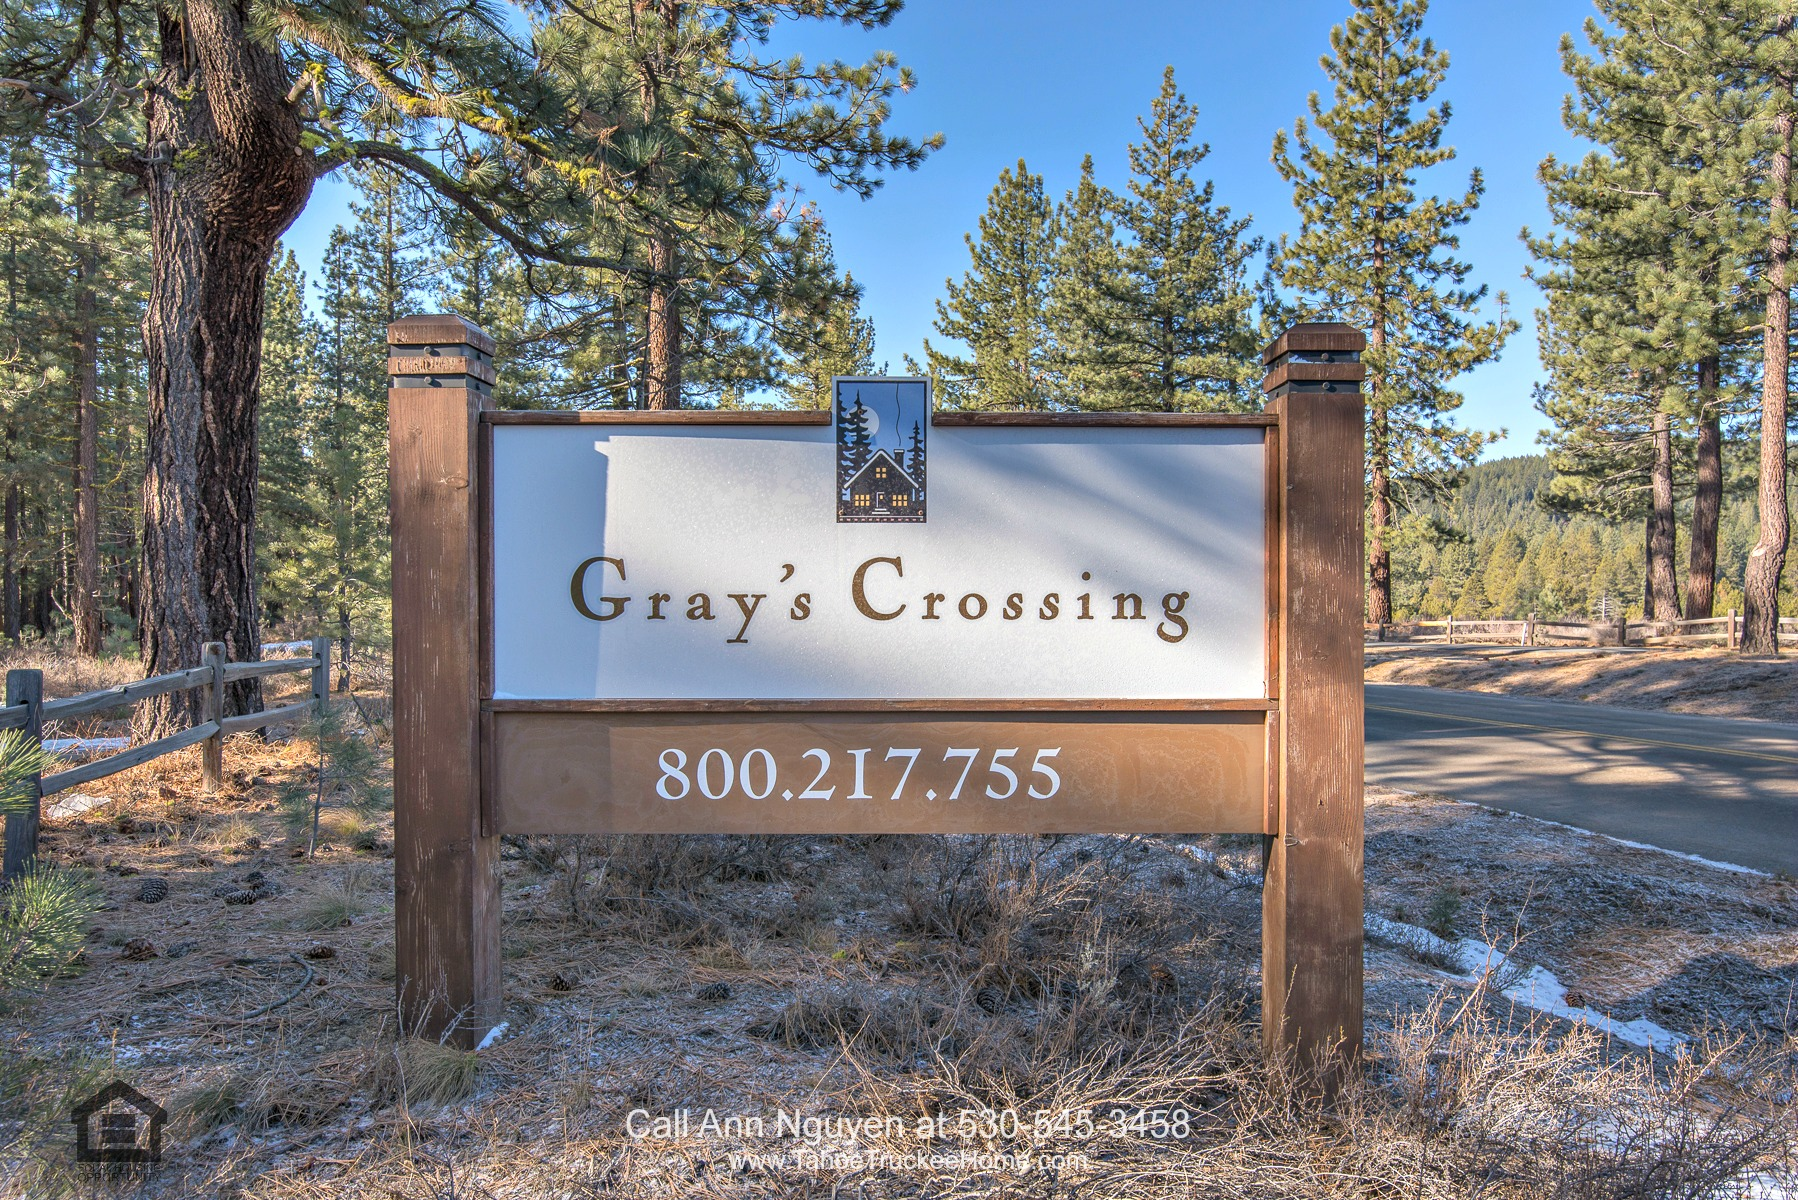 Lots in Truckee CA -  Convenience, easy access and scenic setting are yours in this Truckee CA lot for sale.